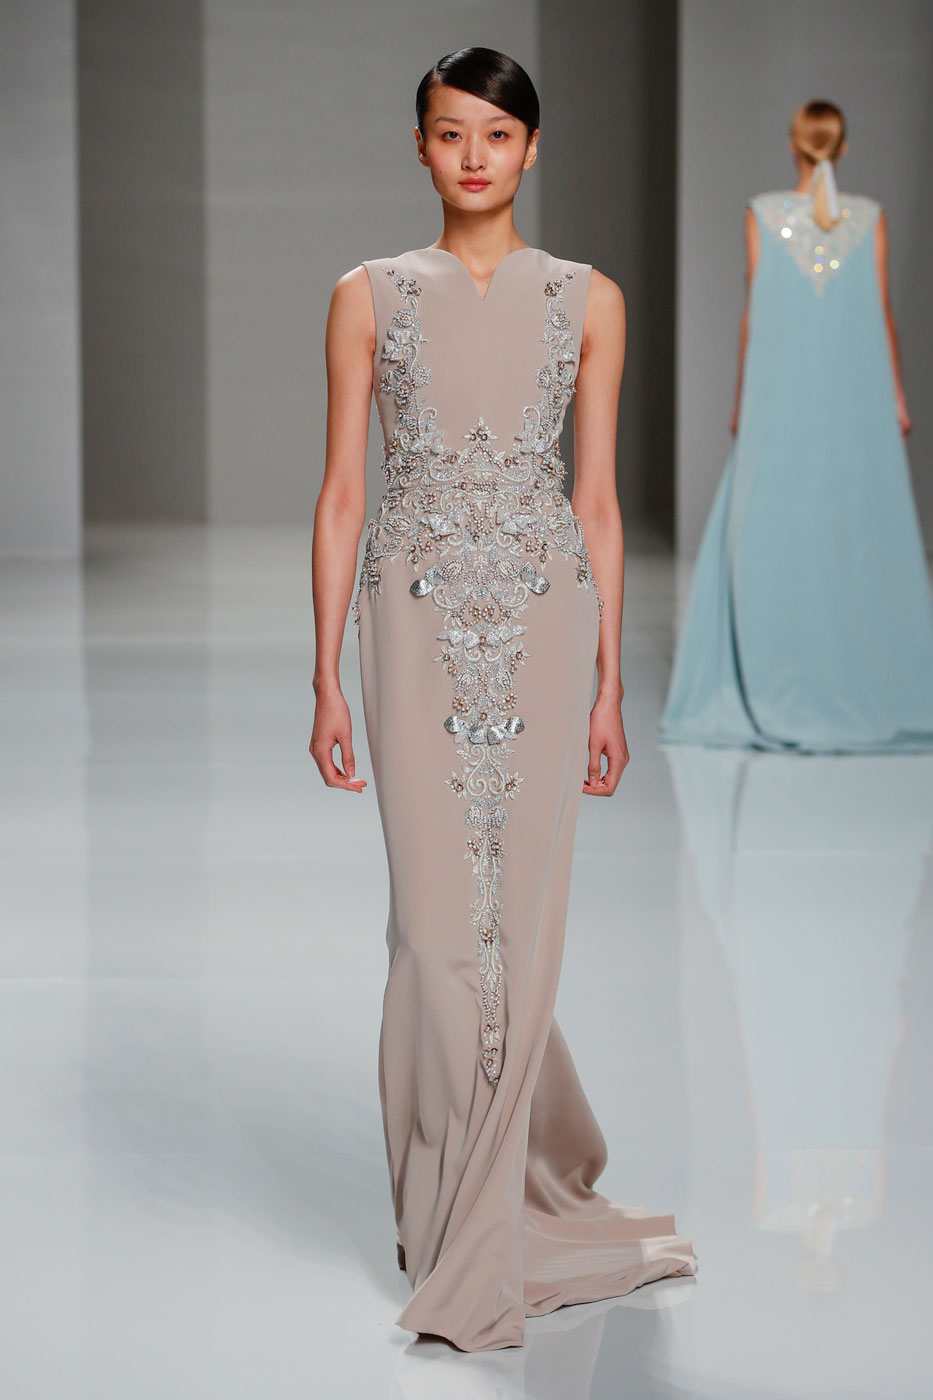 Georges-Hobeika-fashion-runway-show-haute-couture-paris-spring-2015-the-impression-39